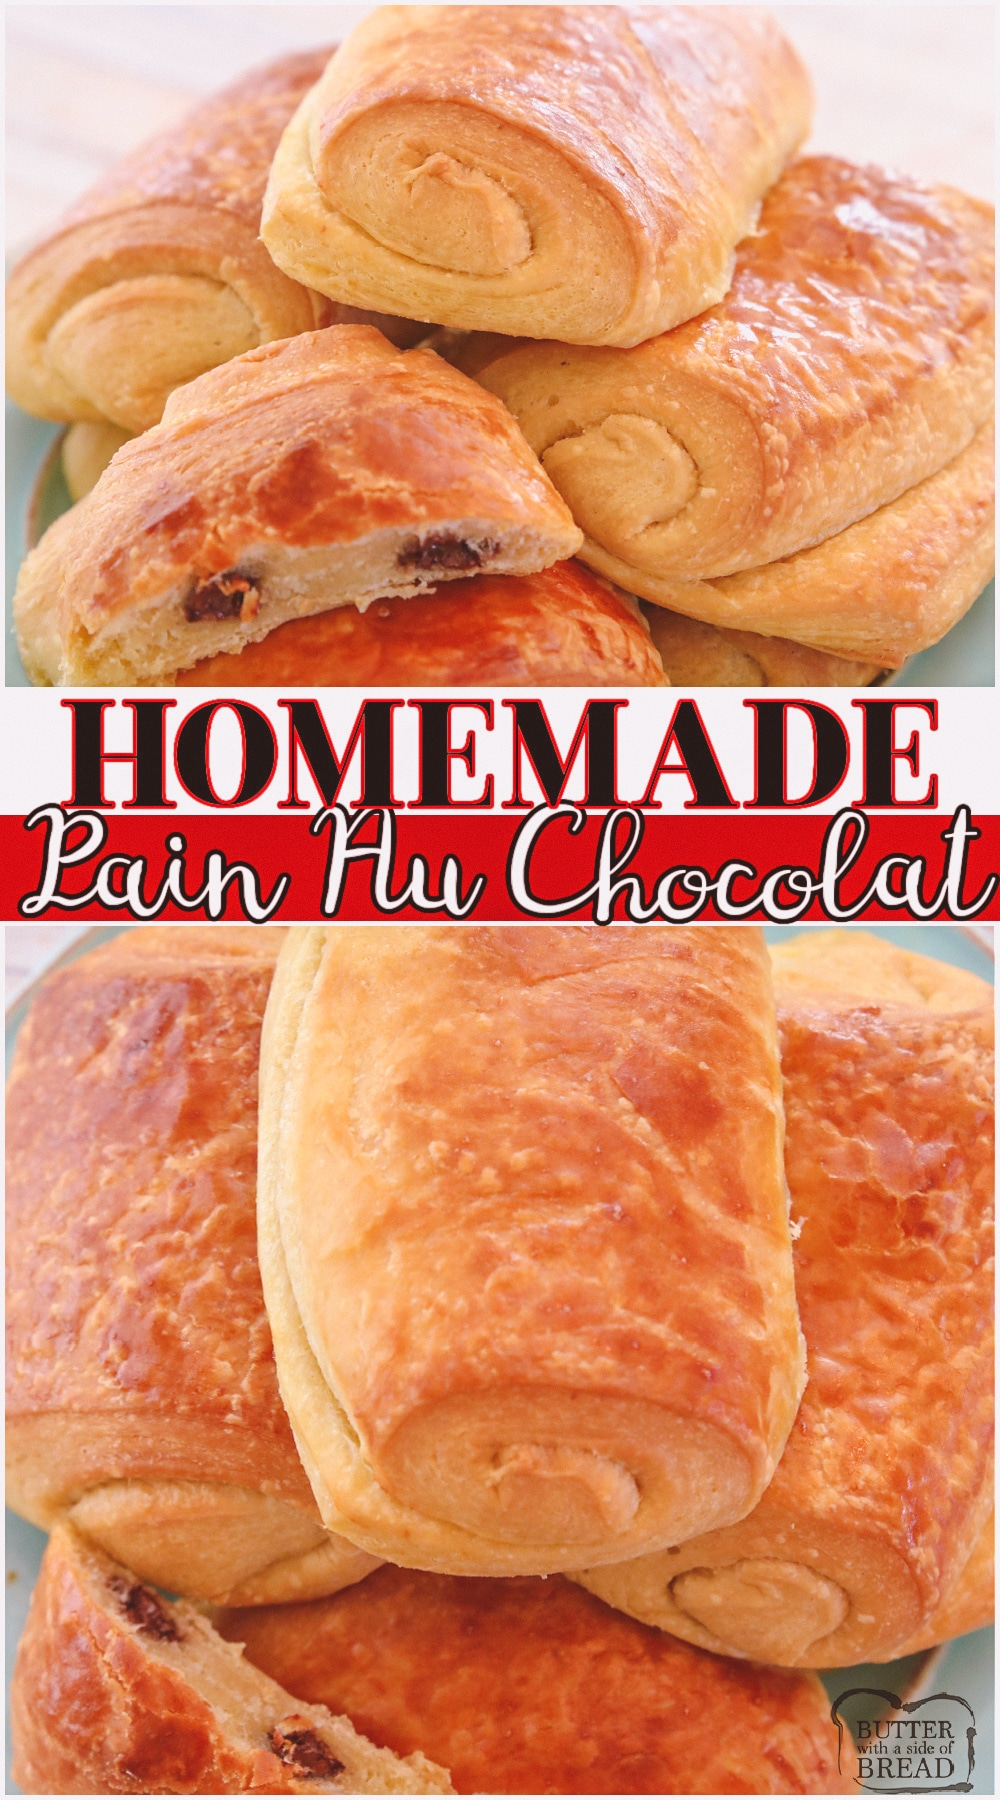 Chocolate croissants are a flakey butter pastry filled with chocolate, also called Pain au Chocolat. These French pastries start with buttery croissant dough and they're easier to make than you think! #croissant #painauchocolate #baking #butter #howto #chocolatecroissant #recipe from BUTTER WITH A SIDE OF BREAD